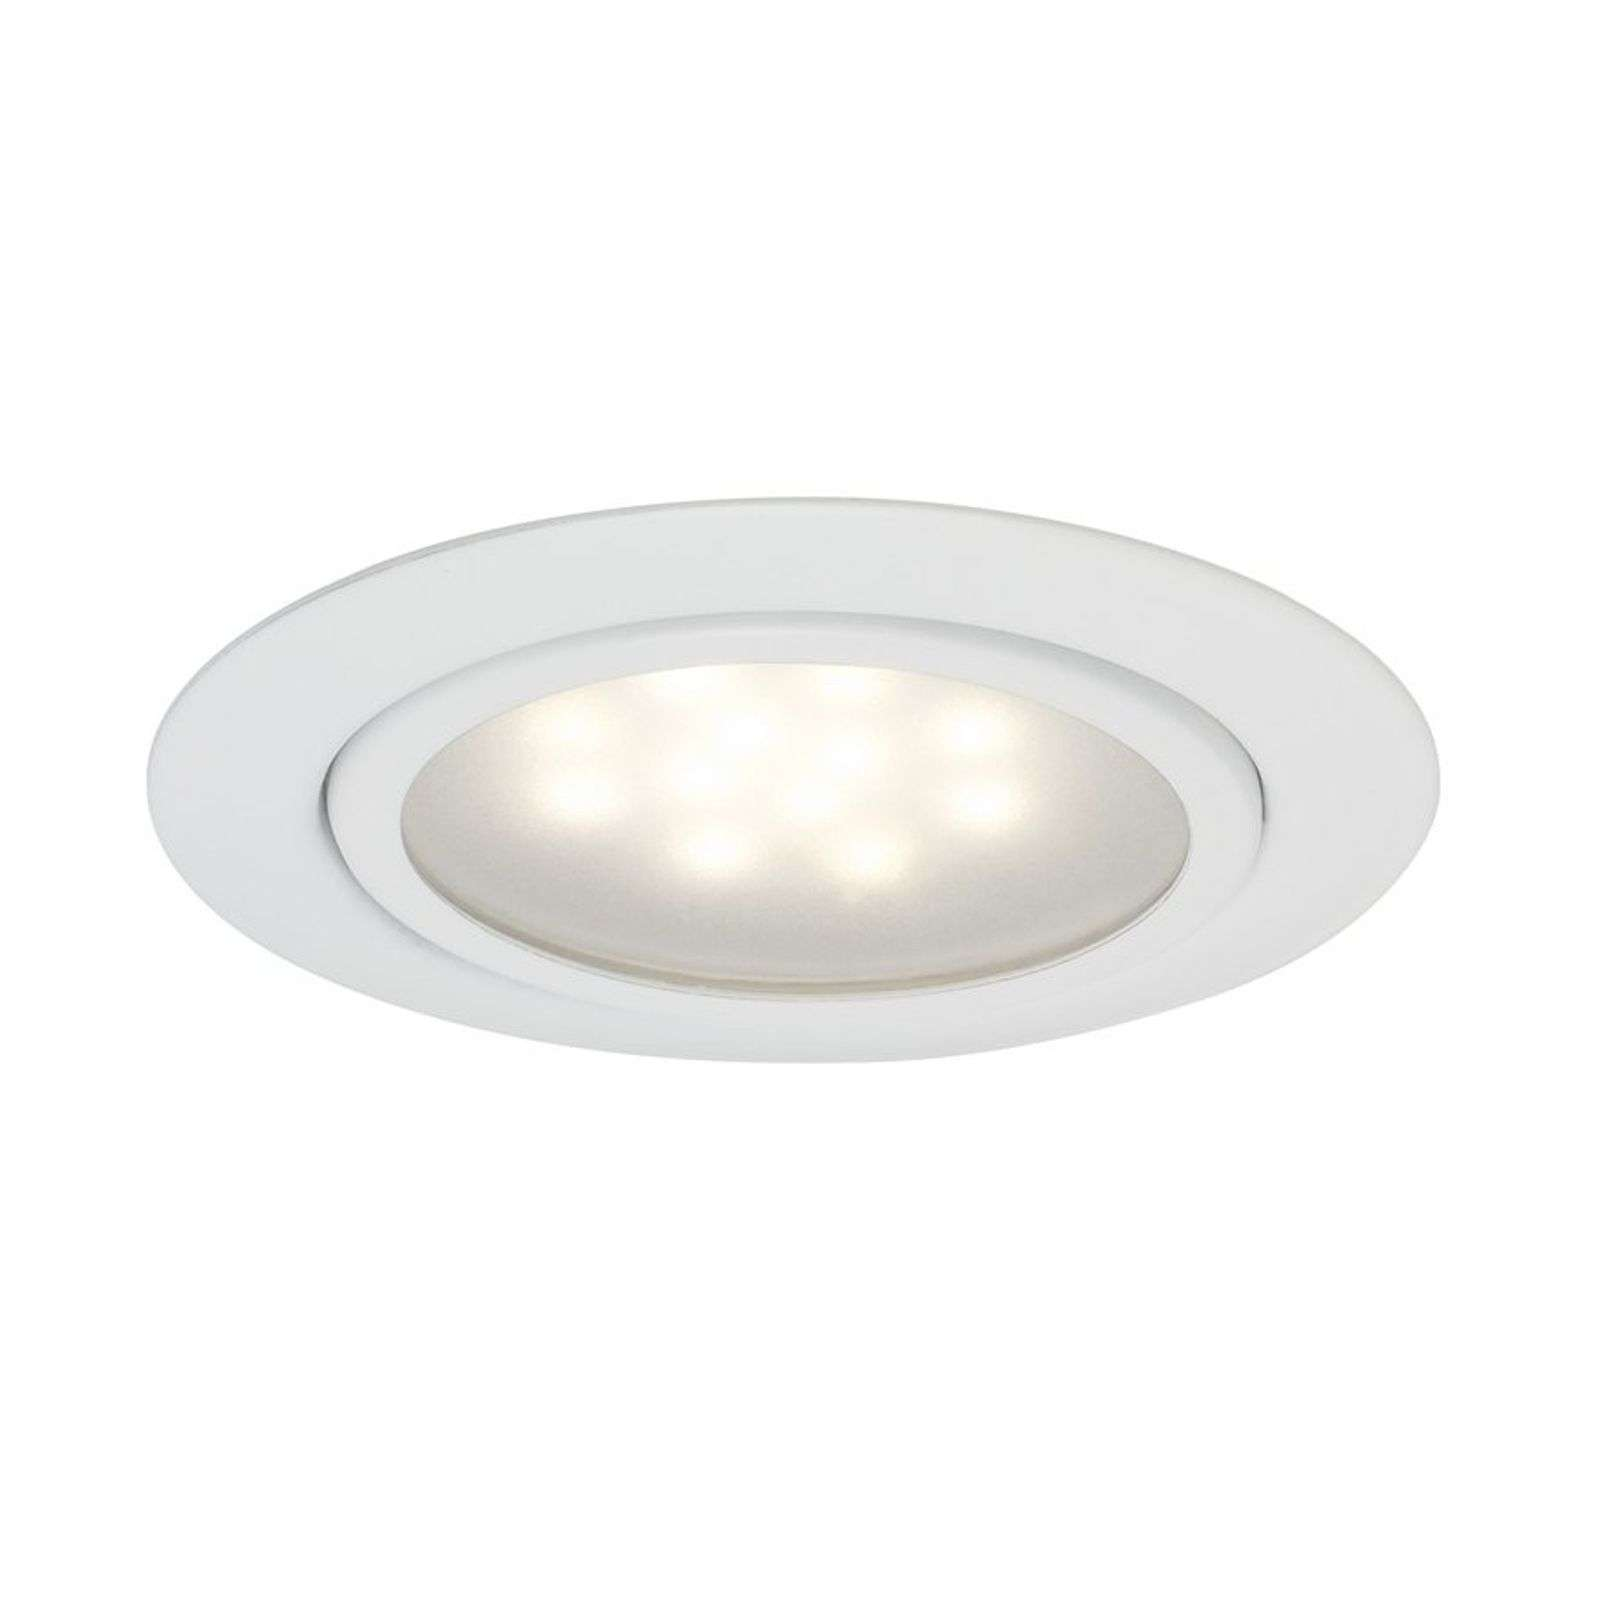 Spot LED Skinne set da 3, bianco